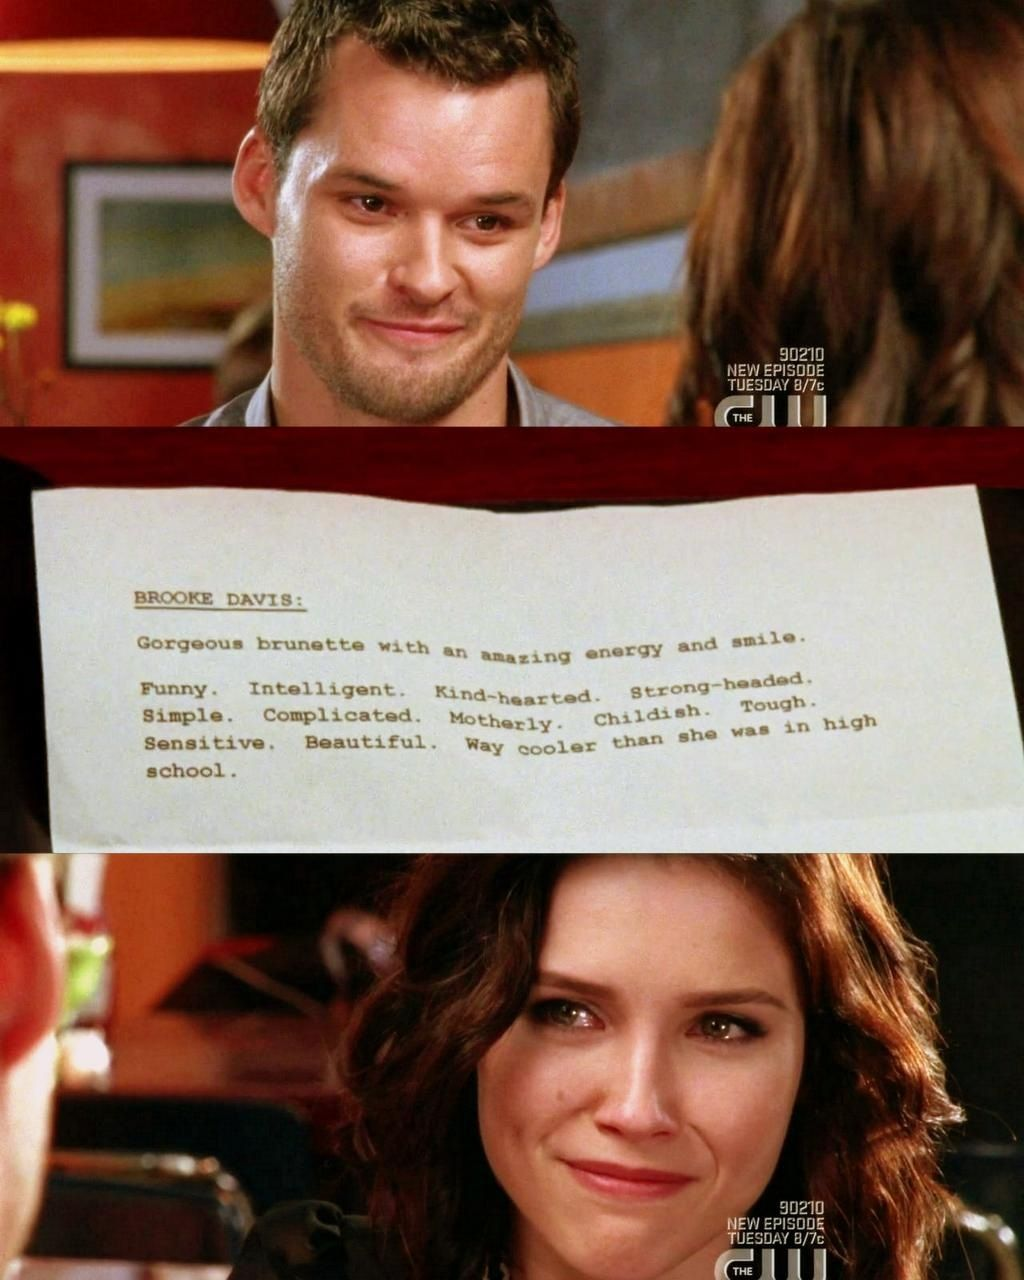 julian's description of brooke. the tears in her eyes say it